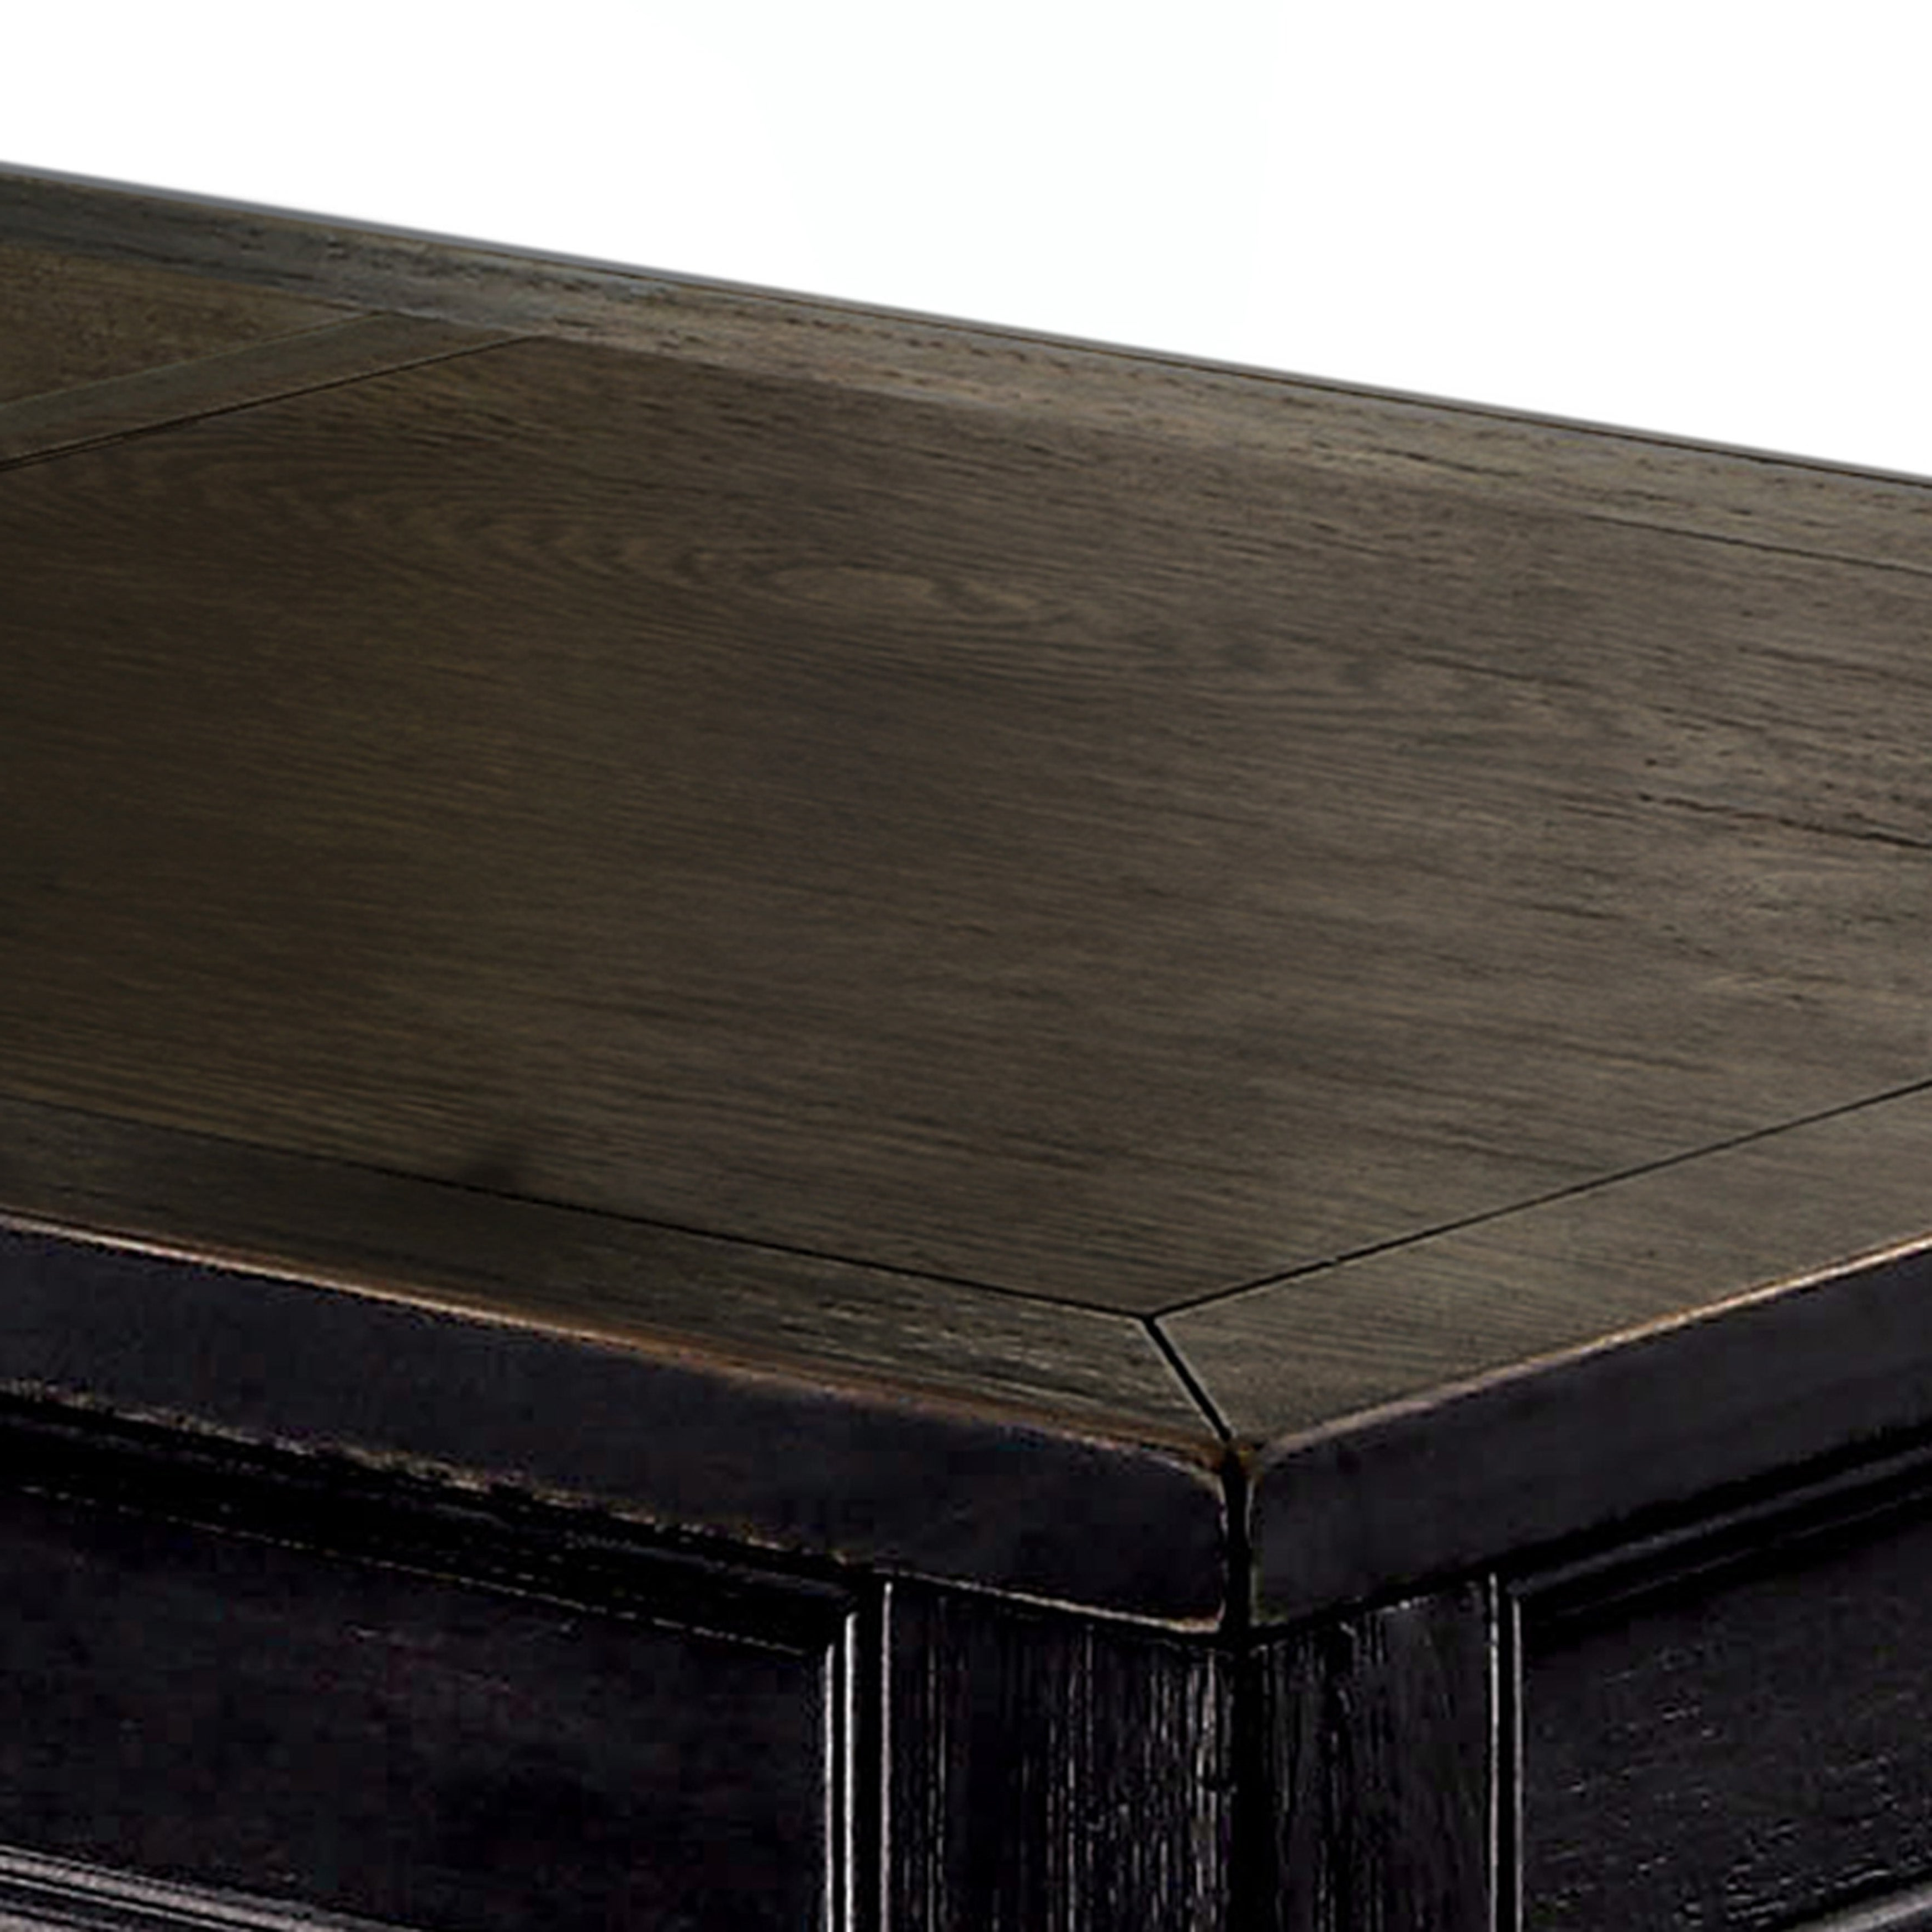 Cosbin Rustic Bold Antique Black Coffee Tablefoa With Regard To Most Recent Cosbin Rustic Bold Antique Black Coffee Tables (View 5 of 20)